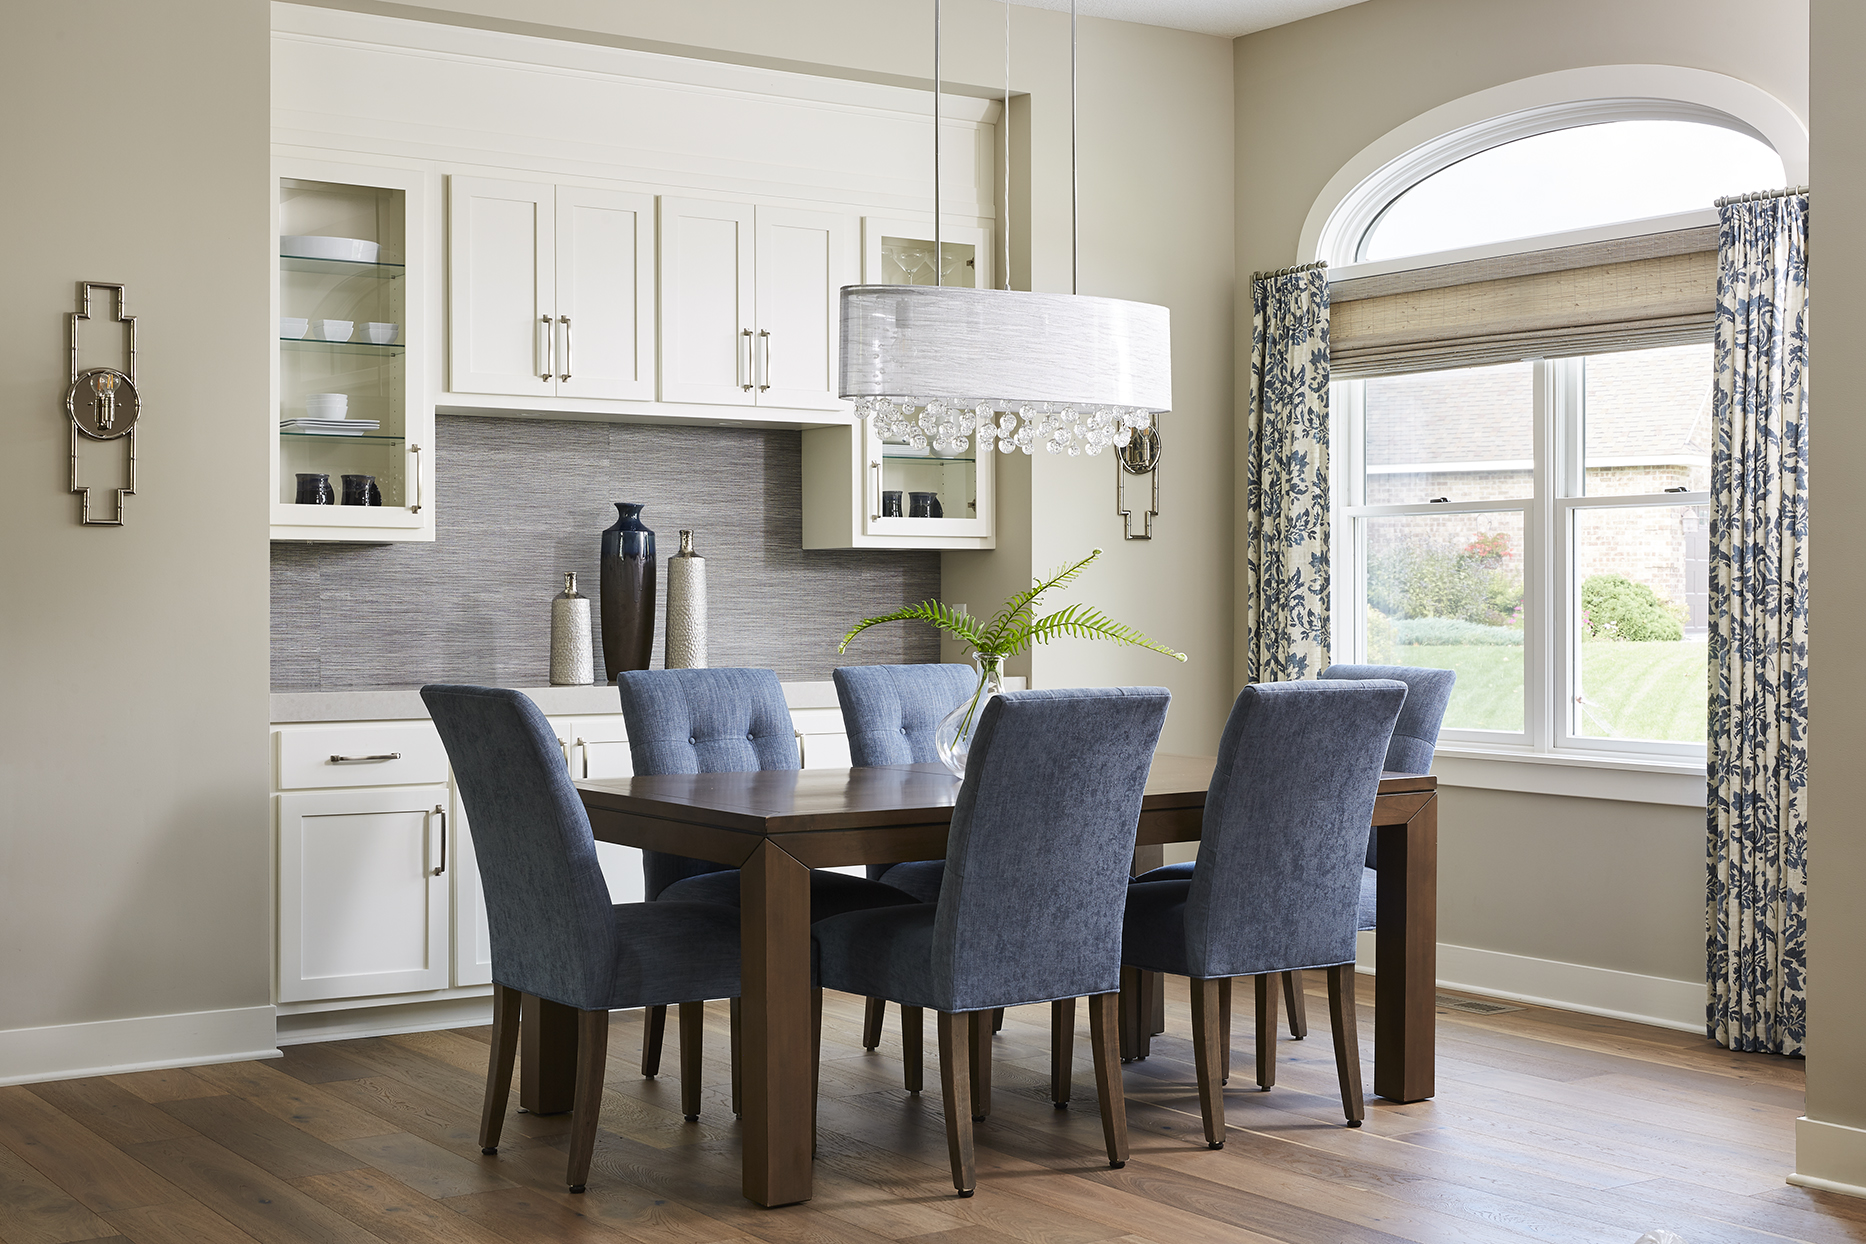 An open and colorful dining space was made possible after removing its original walls, creating a built-in buffet, and installing furniture and fixtures that felt contemporary and chic.